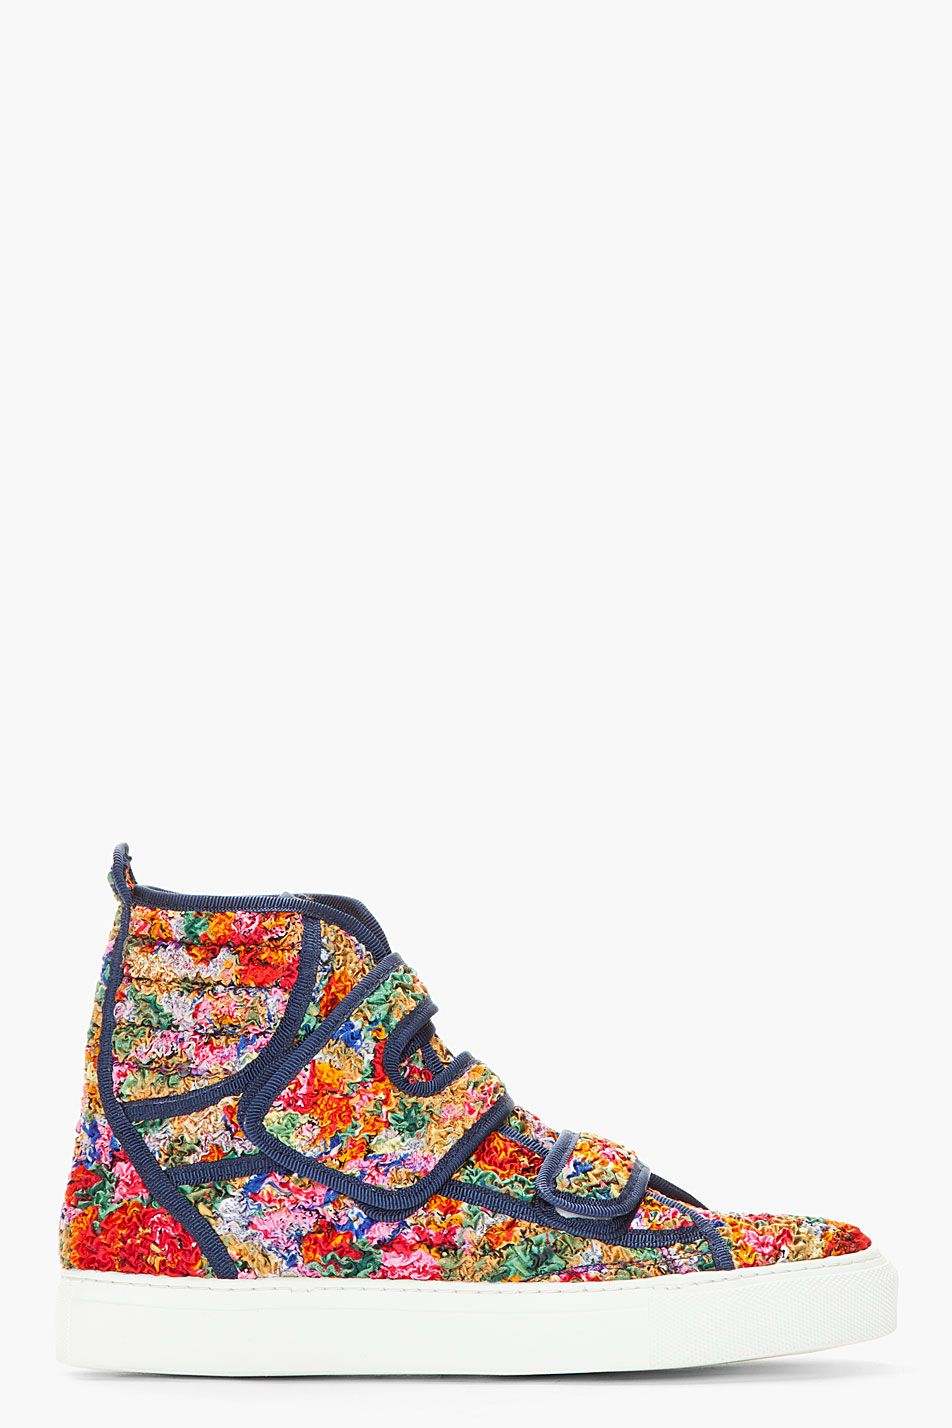 buy online 09b36 6e779 Check out these Raf Simons floral velcro high top sneakers  725, get it  here